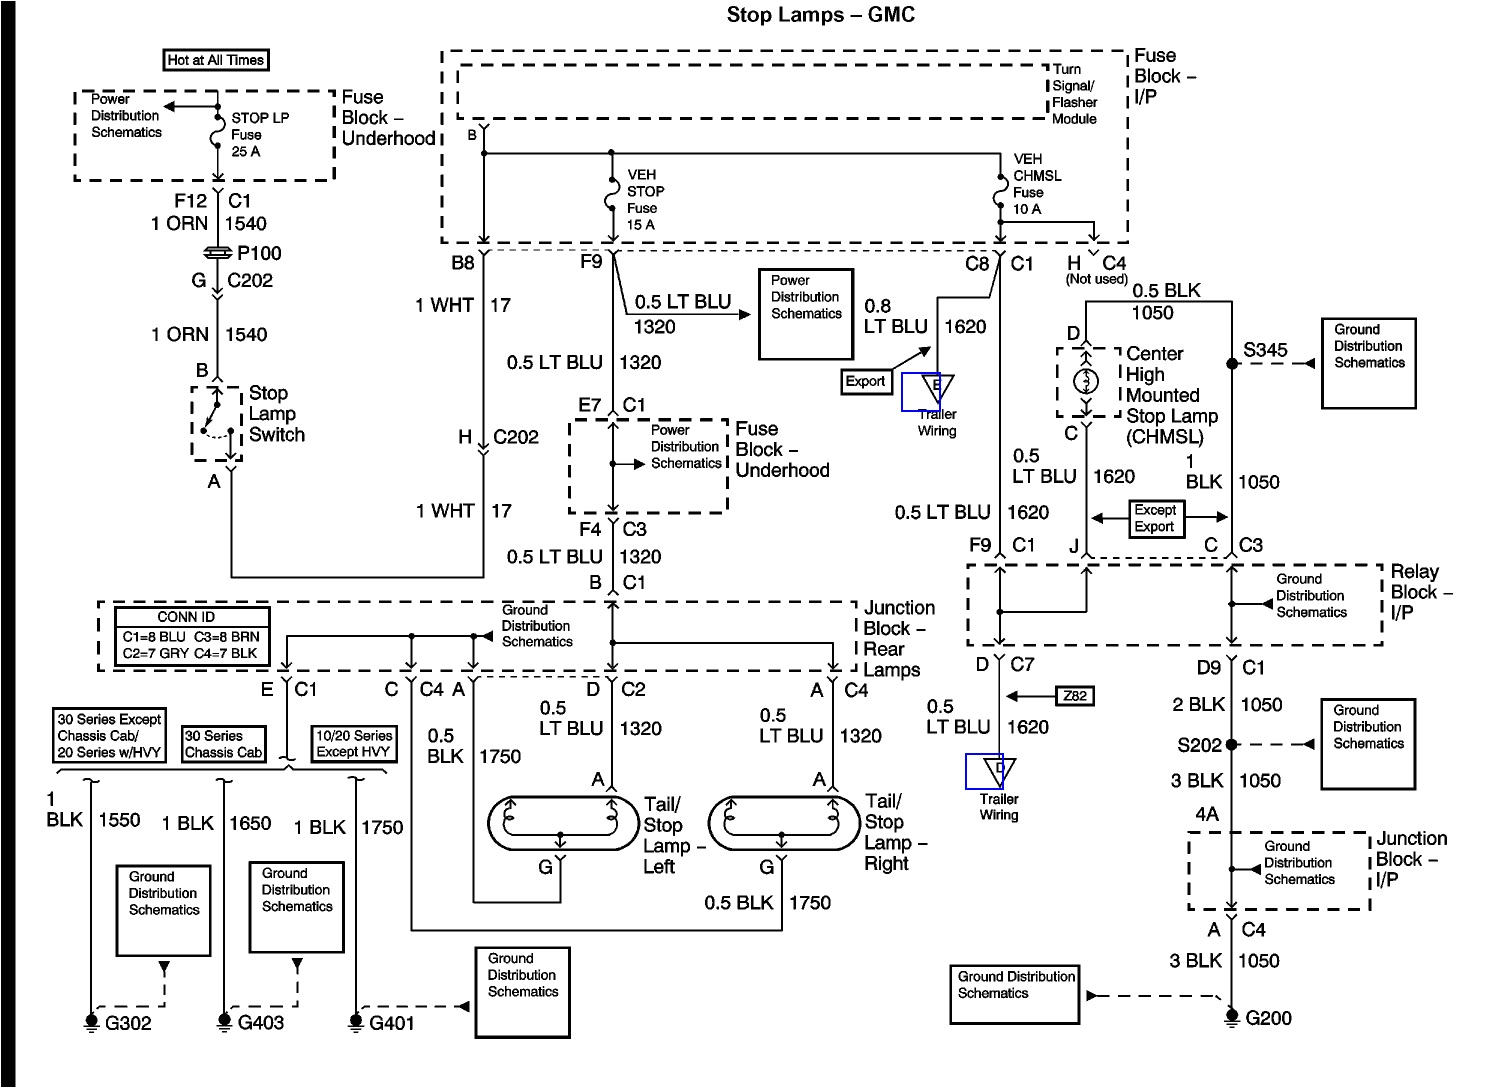 chevrolet headlight switch wiring diagram free download another chevrolet headlight switch wiring diagram free download